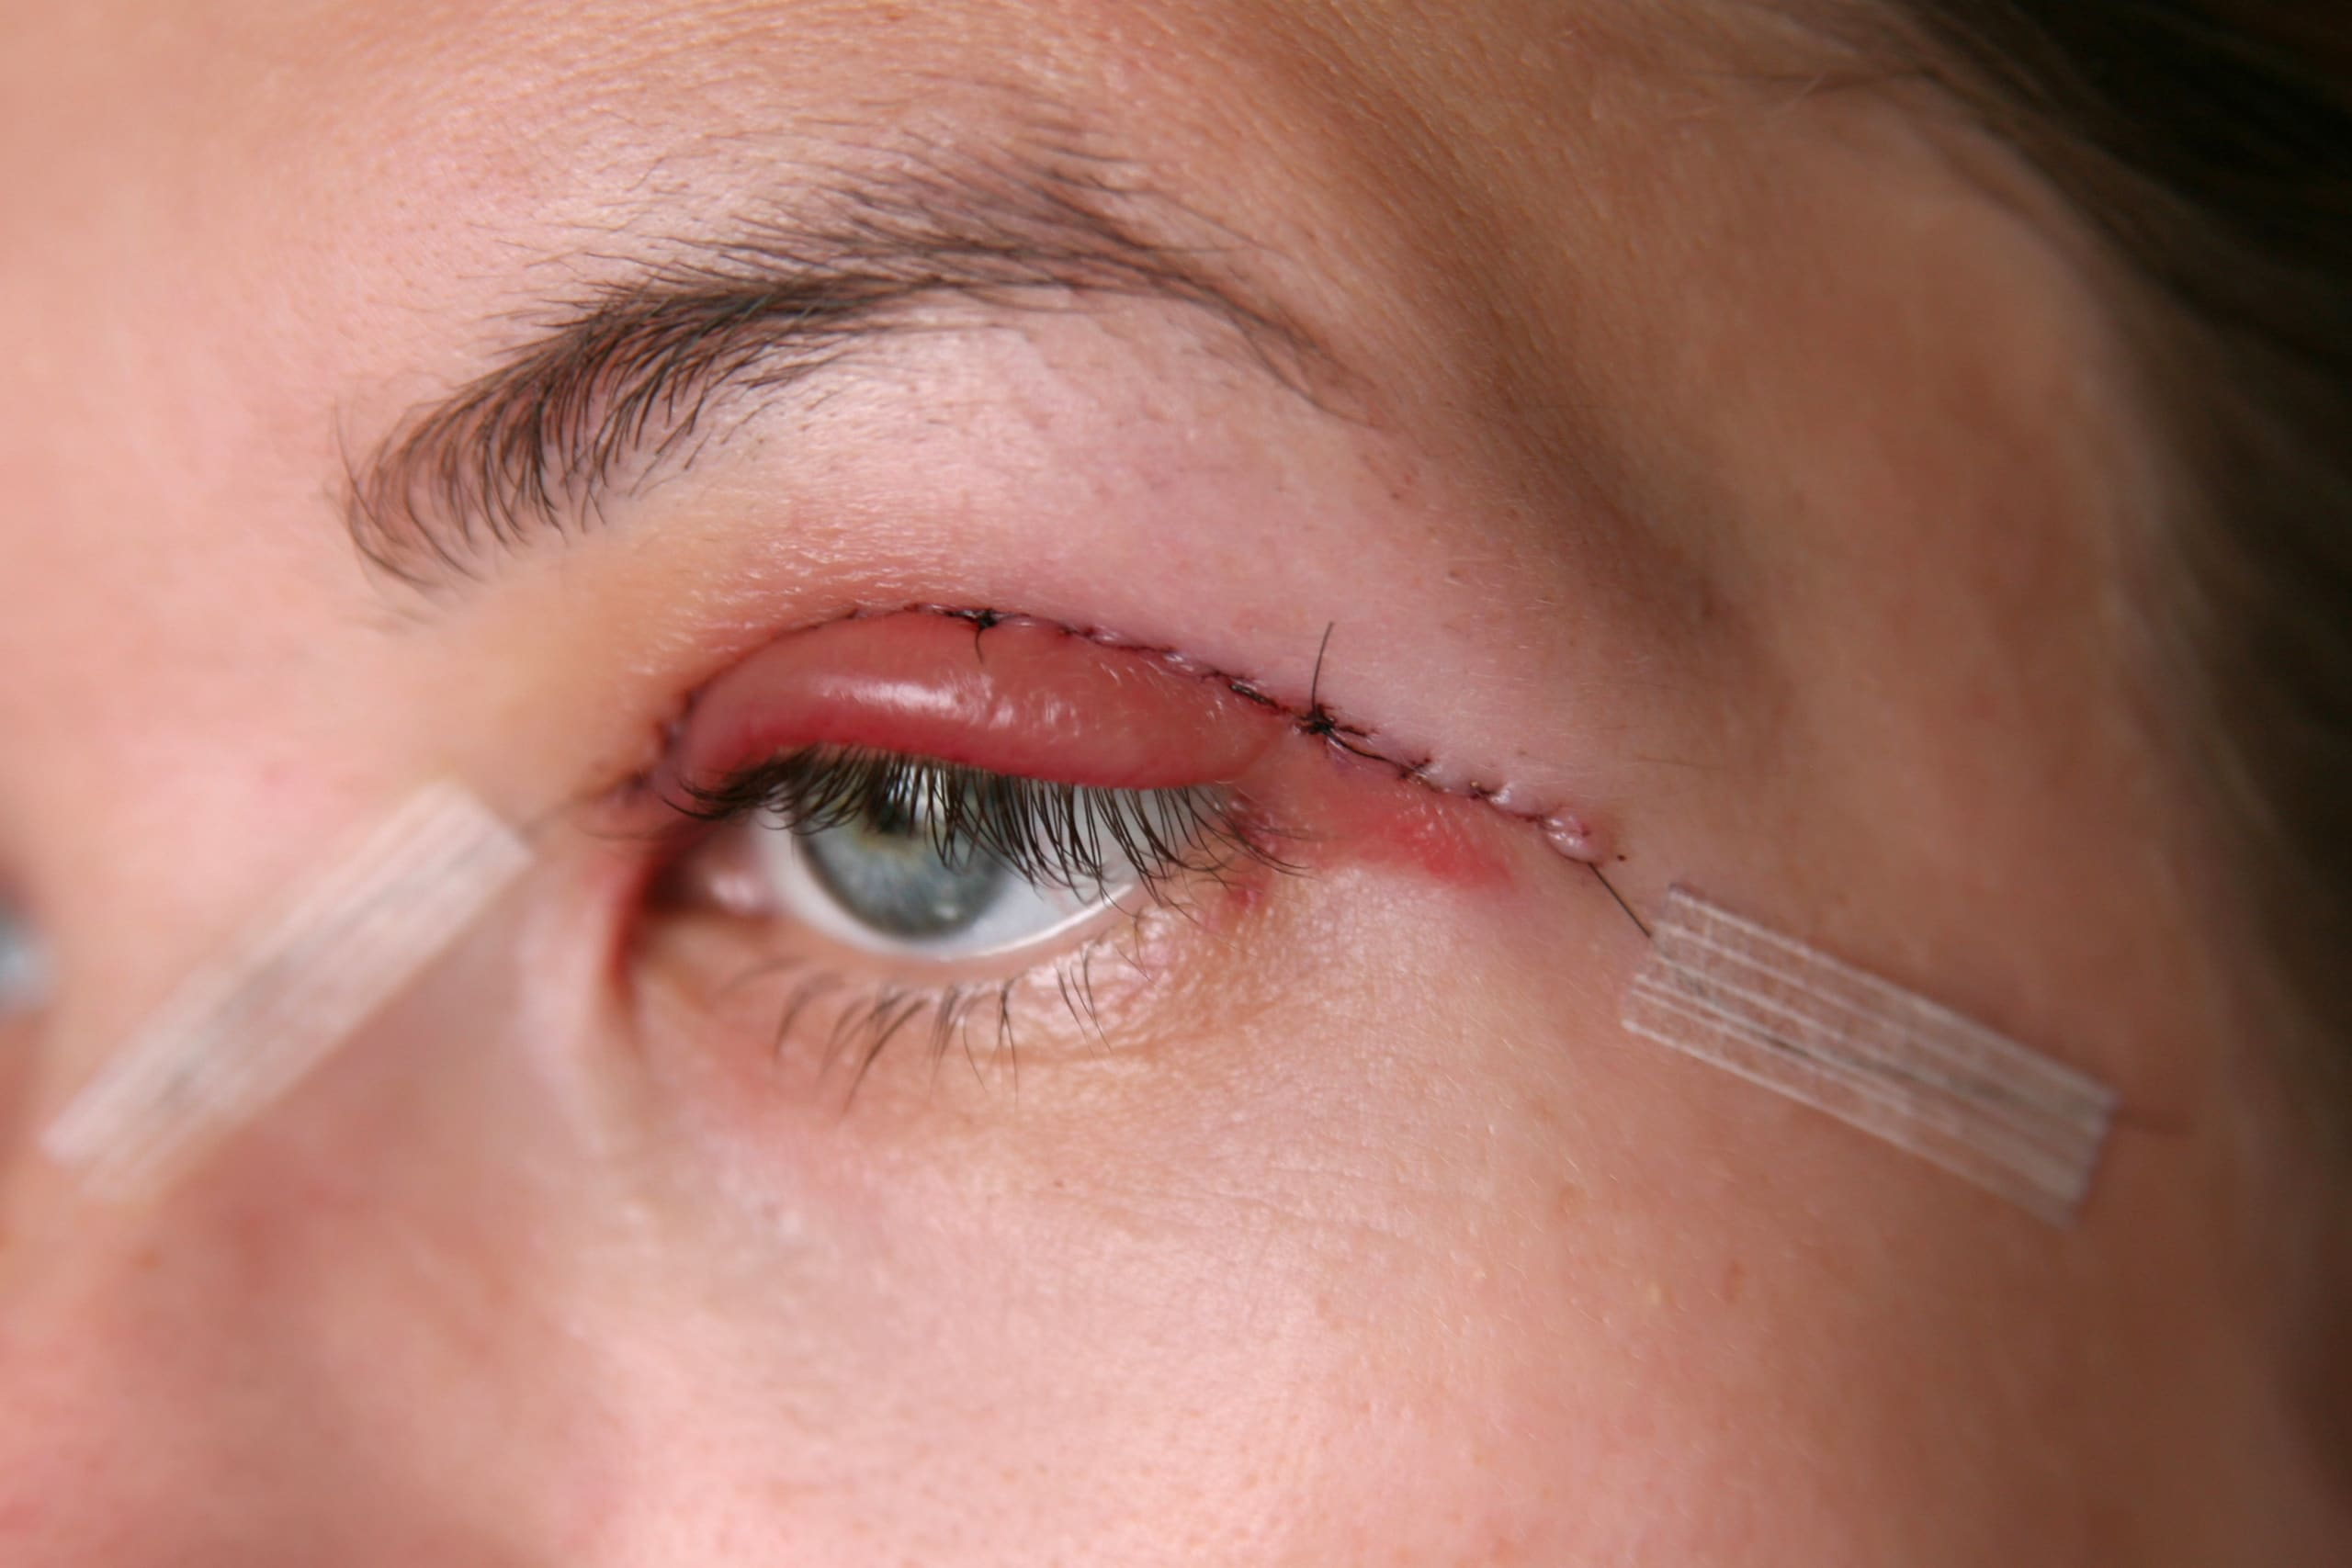 Suture Method vs Cutting Method For Double Eyelid Surgery